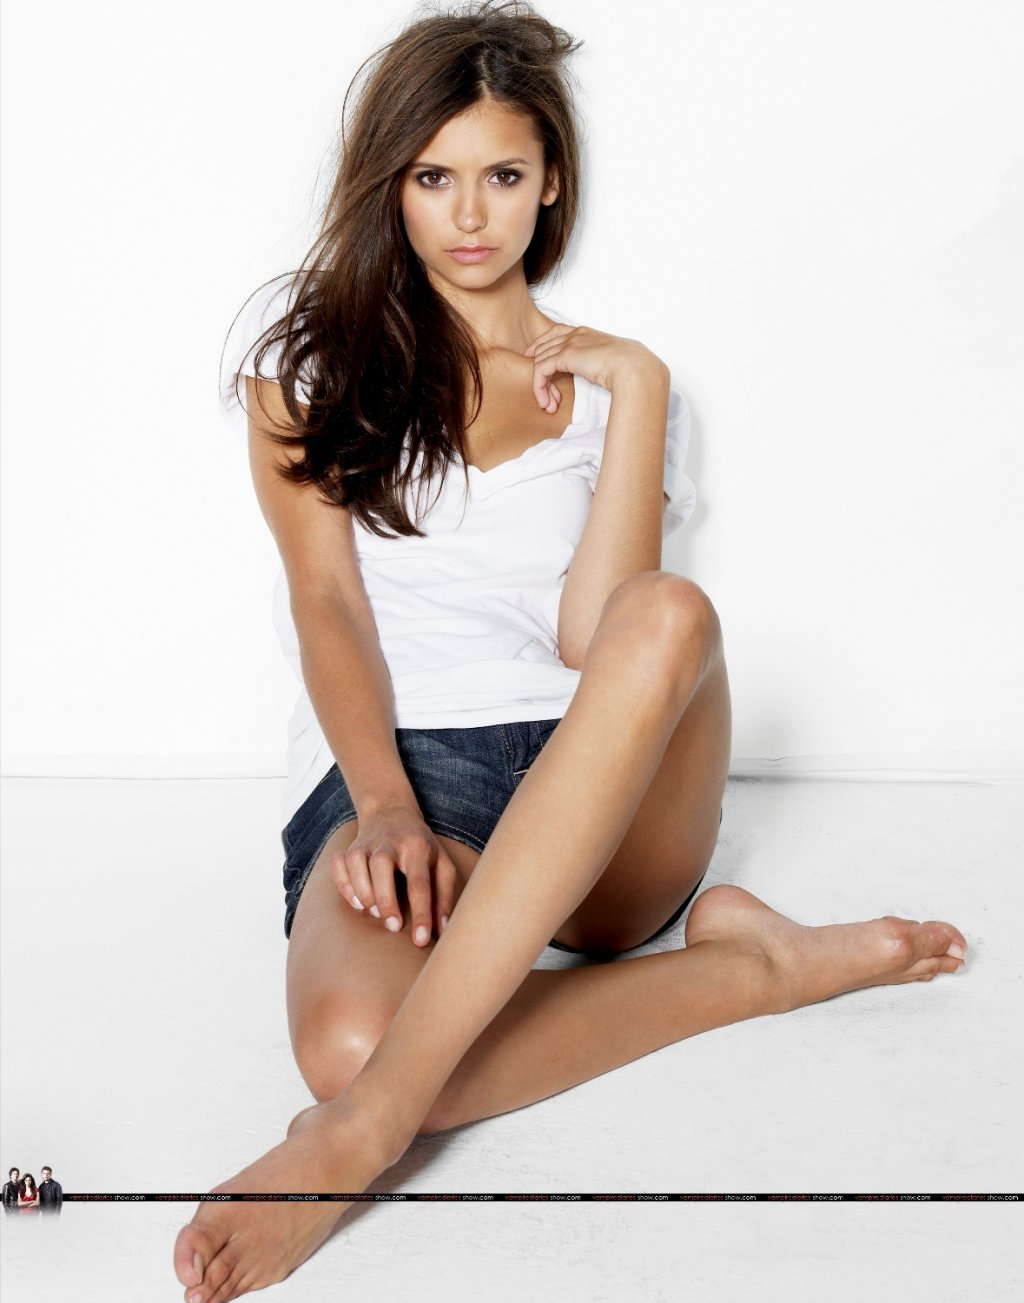 The Vampire Diaries Nina Dobrev Movies HD Wallpapers - vampire diaries nina dobrev wallpapers